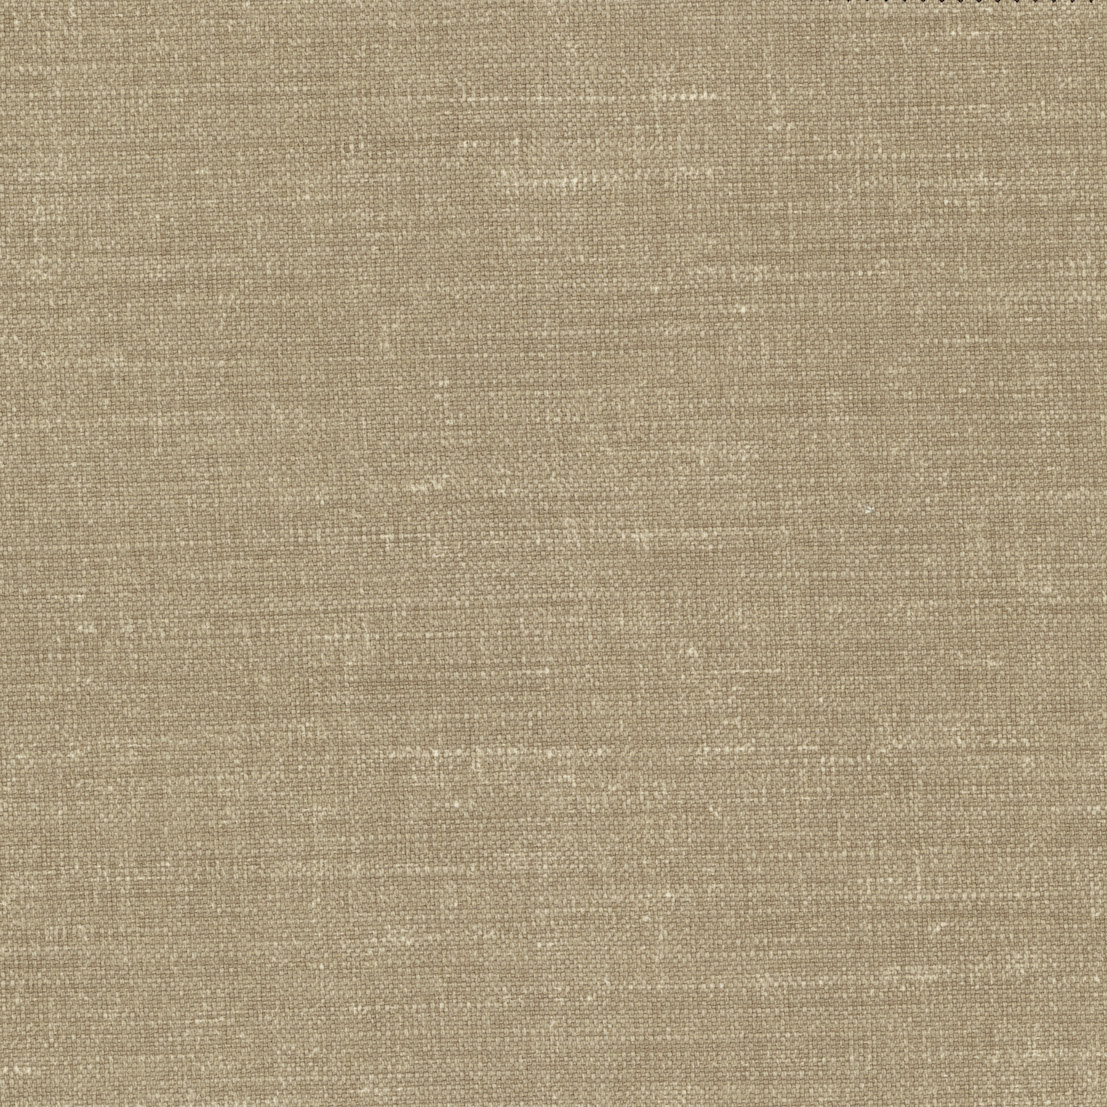 3 Caleido stampato cool beige